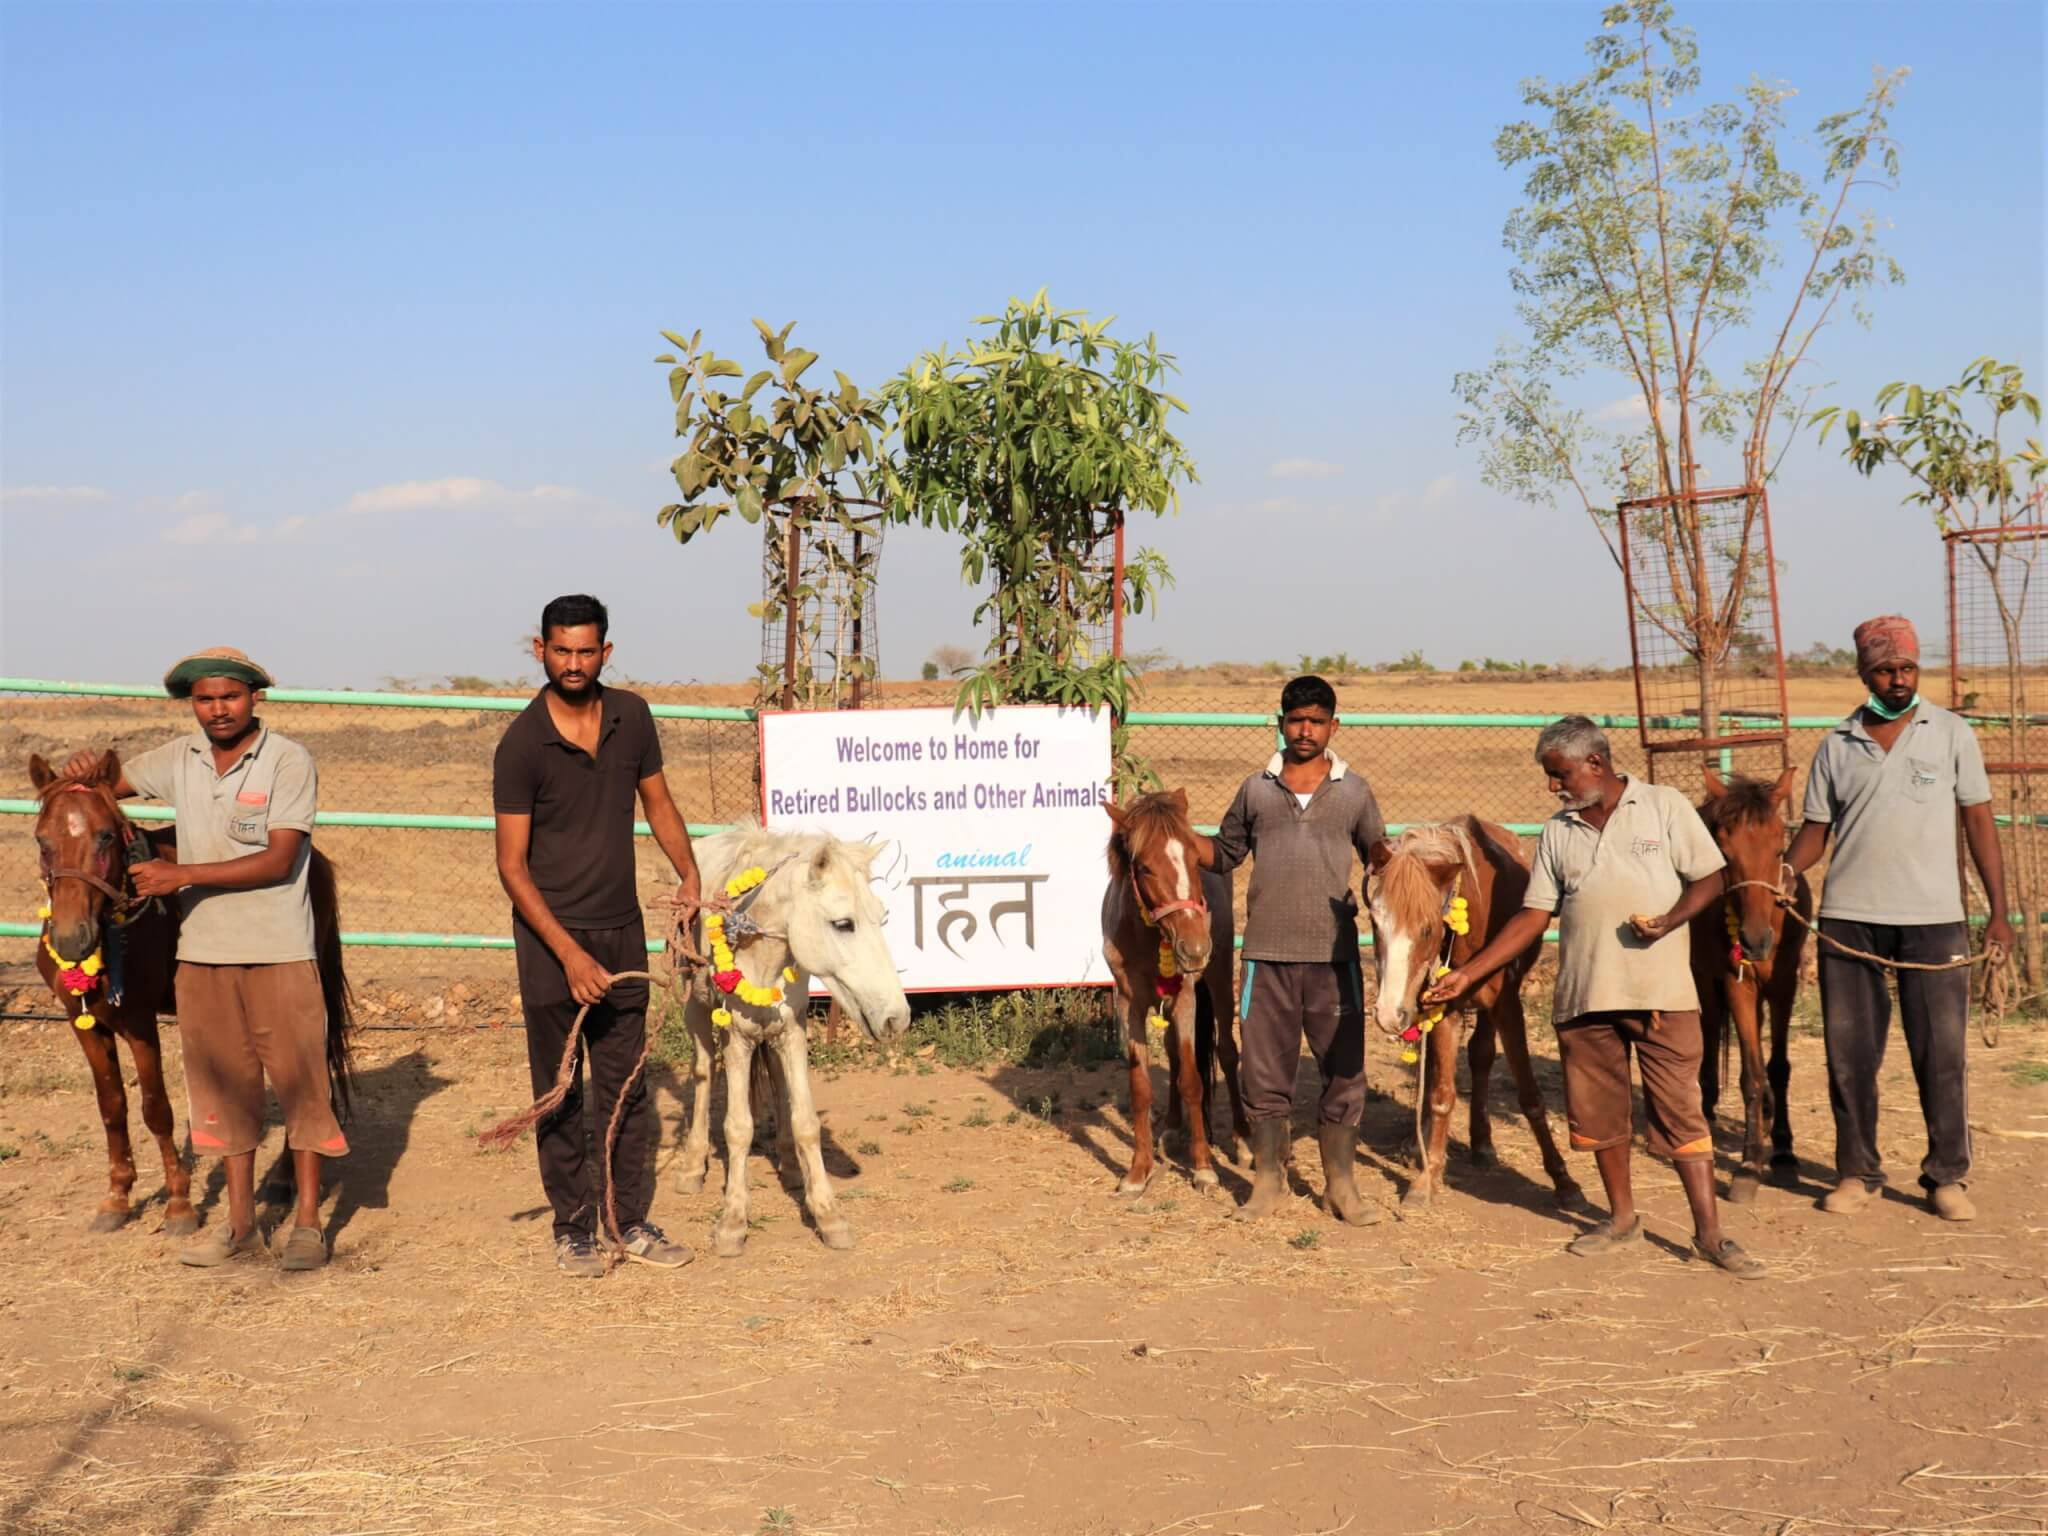 The five rescued ponies stand with staff and a sign welcoming them to Animal Rahat's sanctuary.